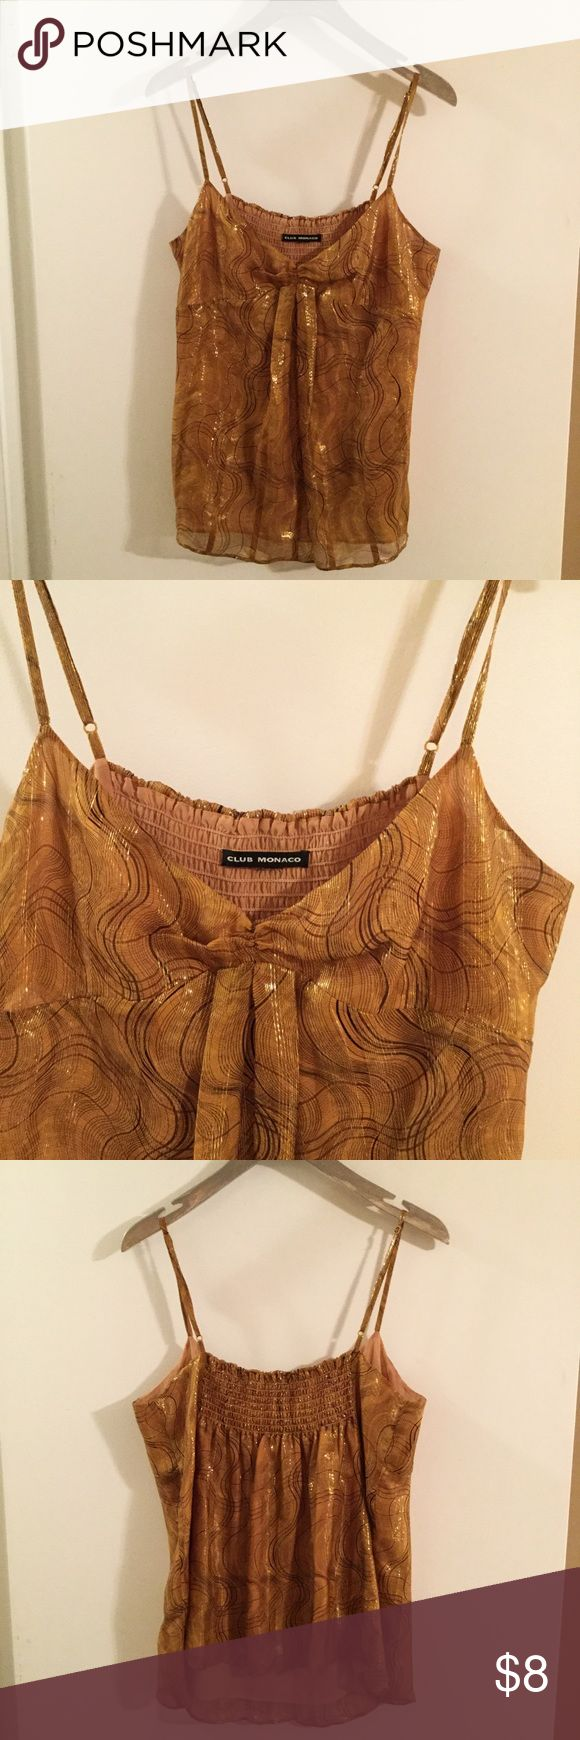 Club Monaco Gold Metallic Silk Cami Top size Med Women's Gold Metallic Cami Top by Club Monaco. Size medium but size and fabric label has been cut out. Silk fabric, dry clean only. Sleeveless with adjustable spaghetti straps. Elasticized back. Lined. Dark gold cooler with brown pattern. Gold metallic thread woven through. Good condition, no holes, stains or pilling. Club Monaco Tops Camisoles